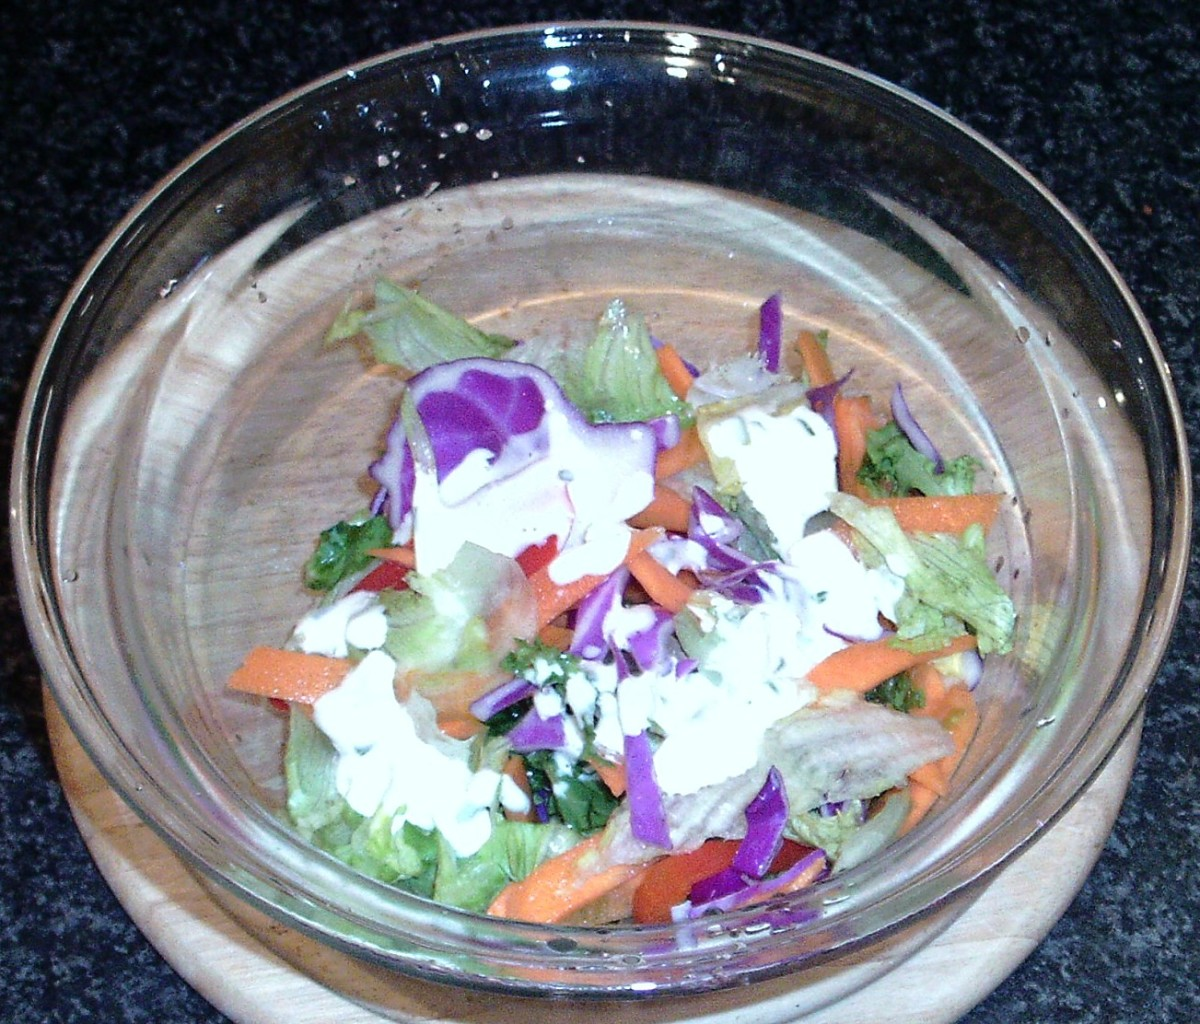 Dressing is poured over salad in a suitable bowl